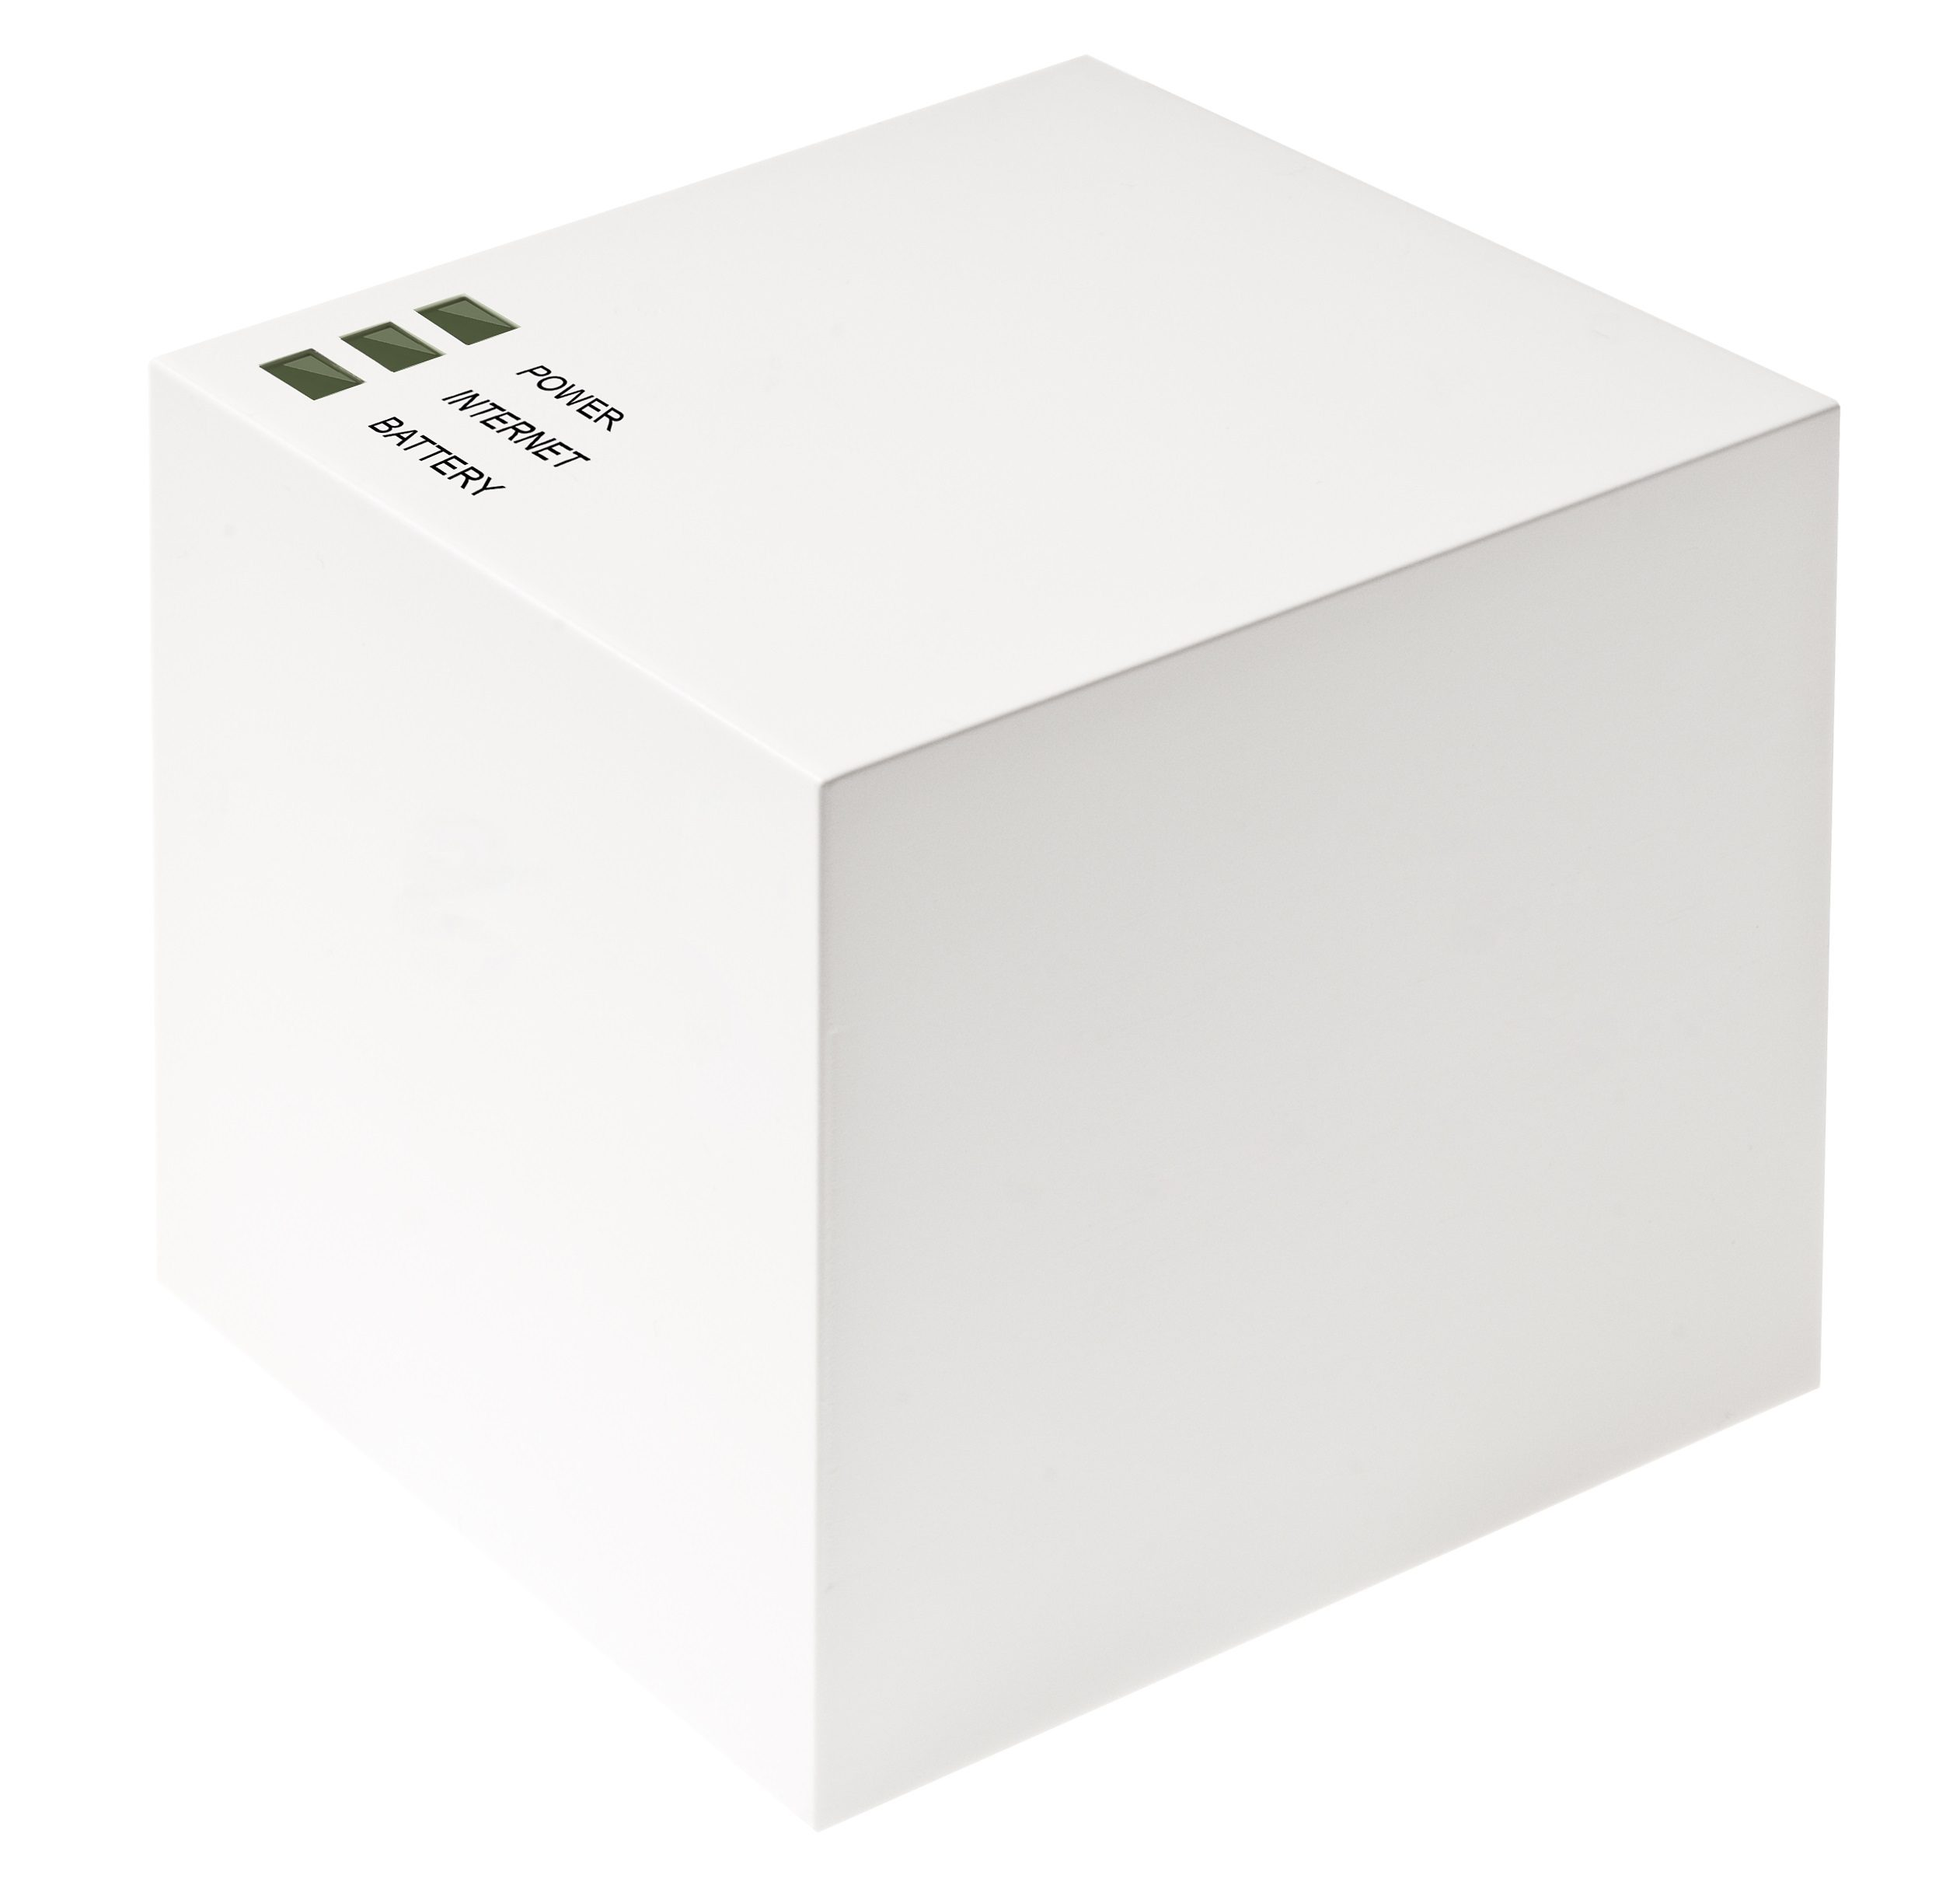 MAX! Smart Home - Raumklima & Komfort »Cube LAN Gateway«